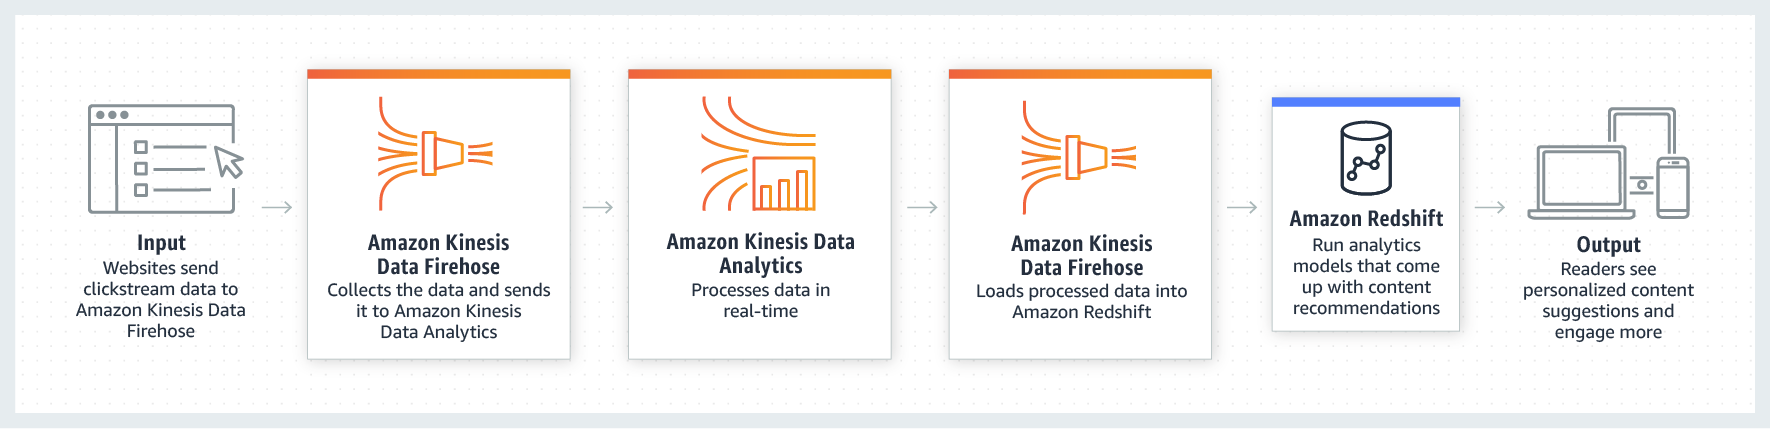 product-page-diagram_Amazon-Kinesis_Evolve-from-batch-to-real-